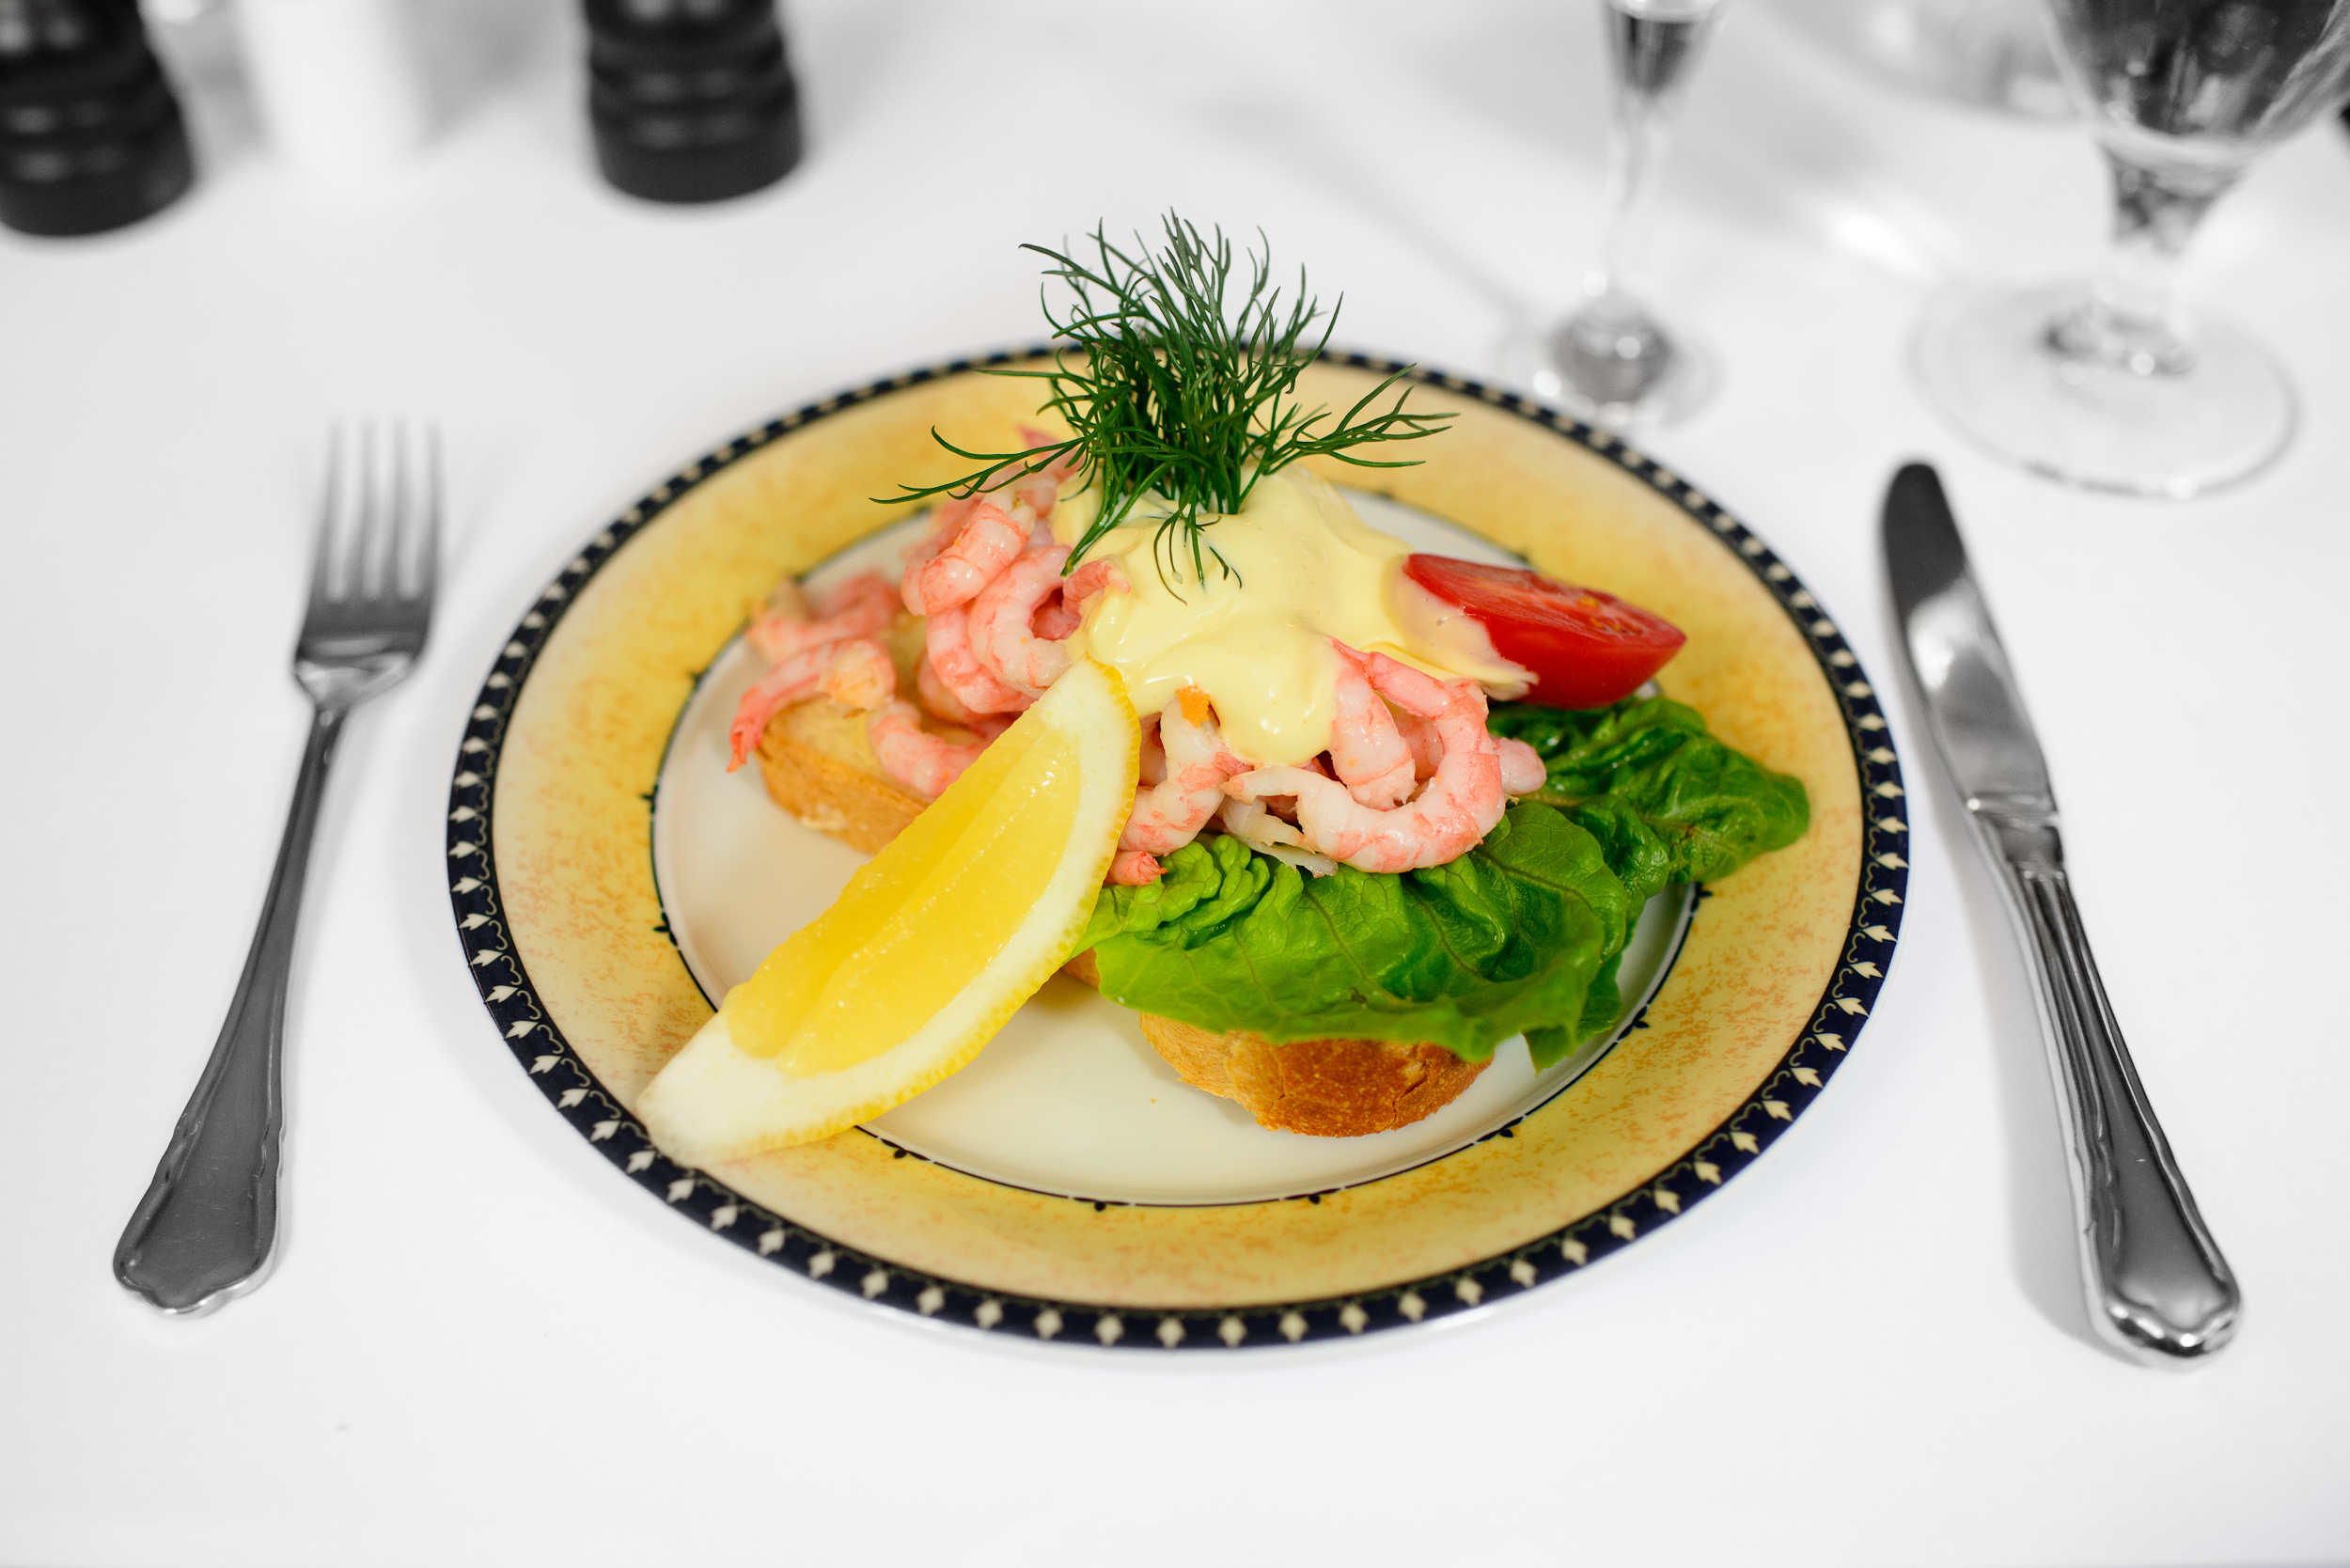 Hand-shelled shrimps from Greenland, mayonnaise and lemon